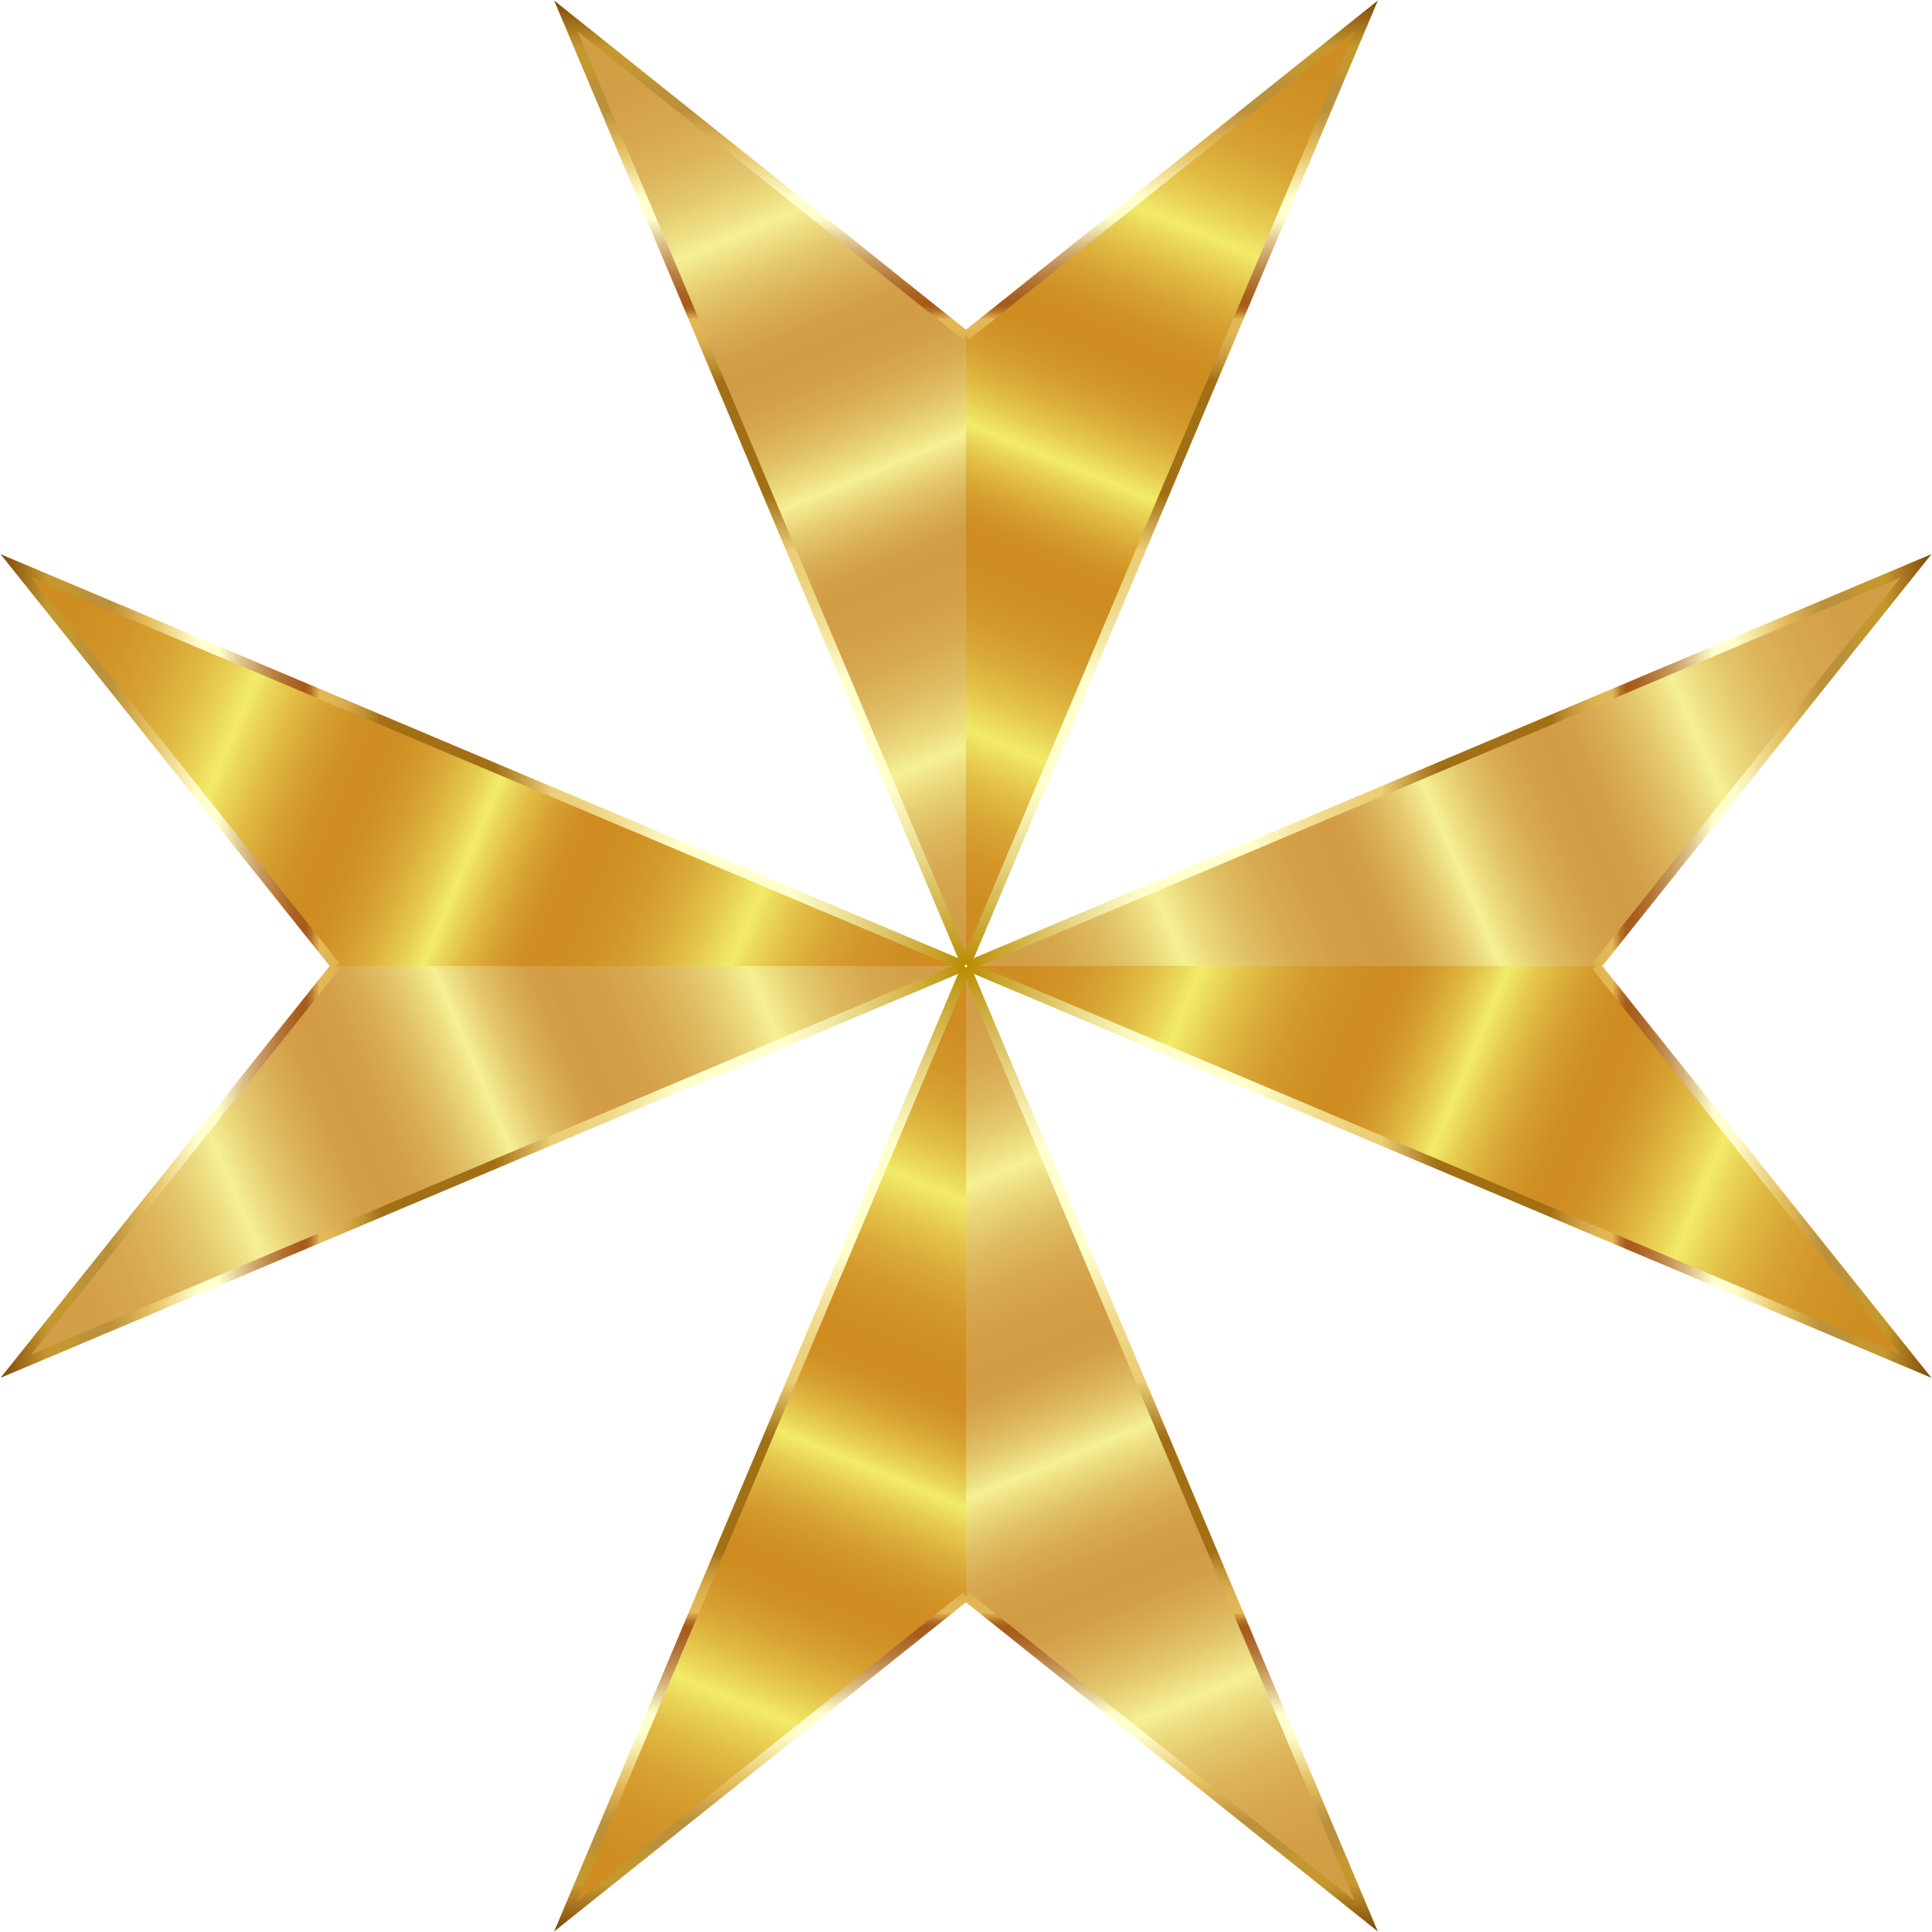 2342x2342 Gold Maltese Cross Mark Ii No Background Icons Png